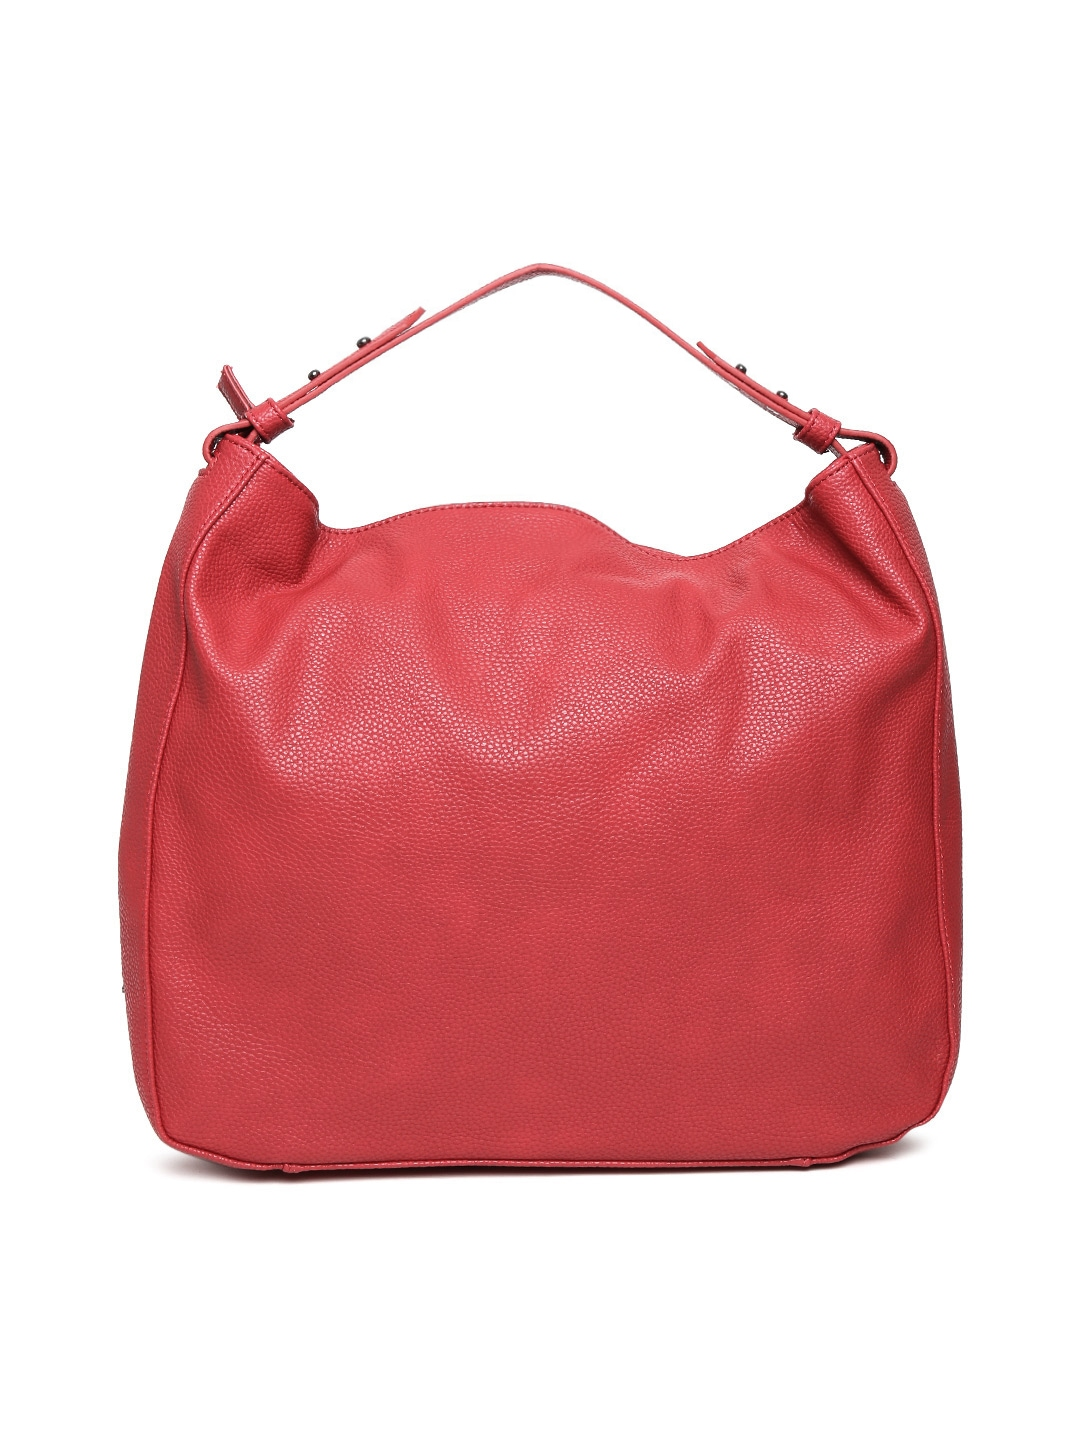 handbags by united colors of benetton more red handbags more handbags - Sac United Colors Of Benetton